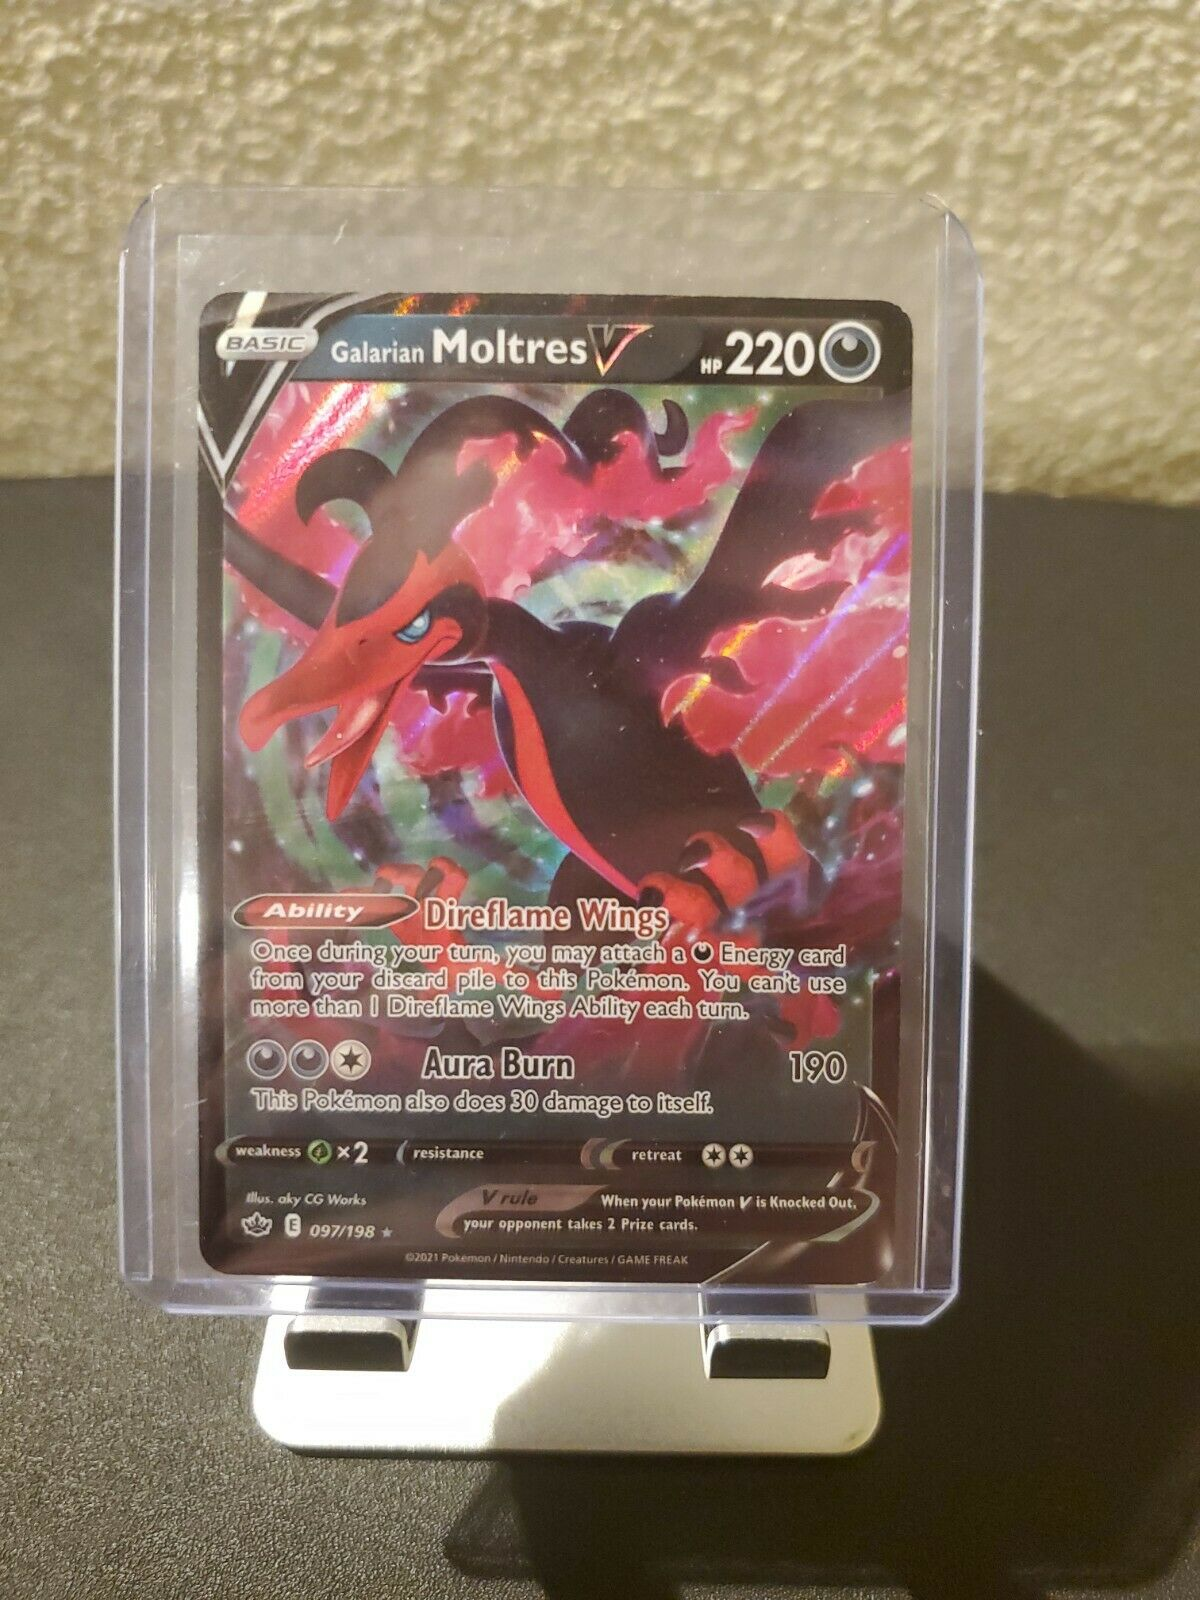 Galarian Moltres V Pokemon Chilling Reign Card 097/198 Mint Condition